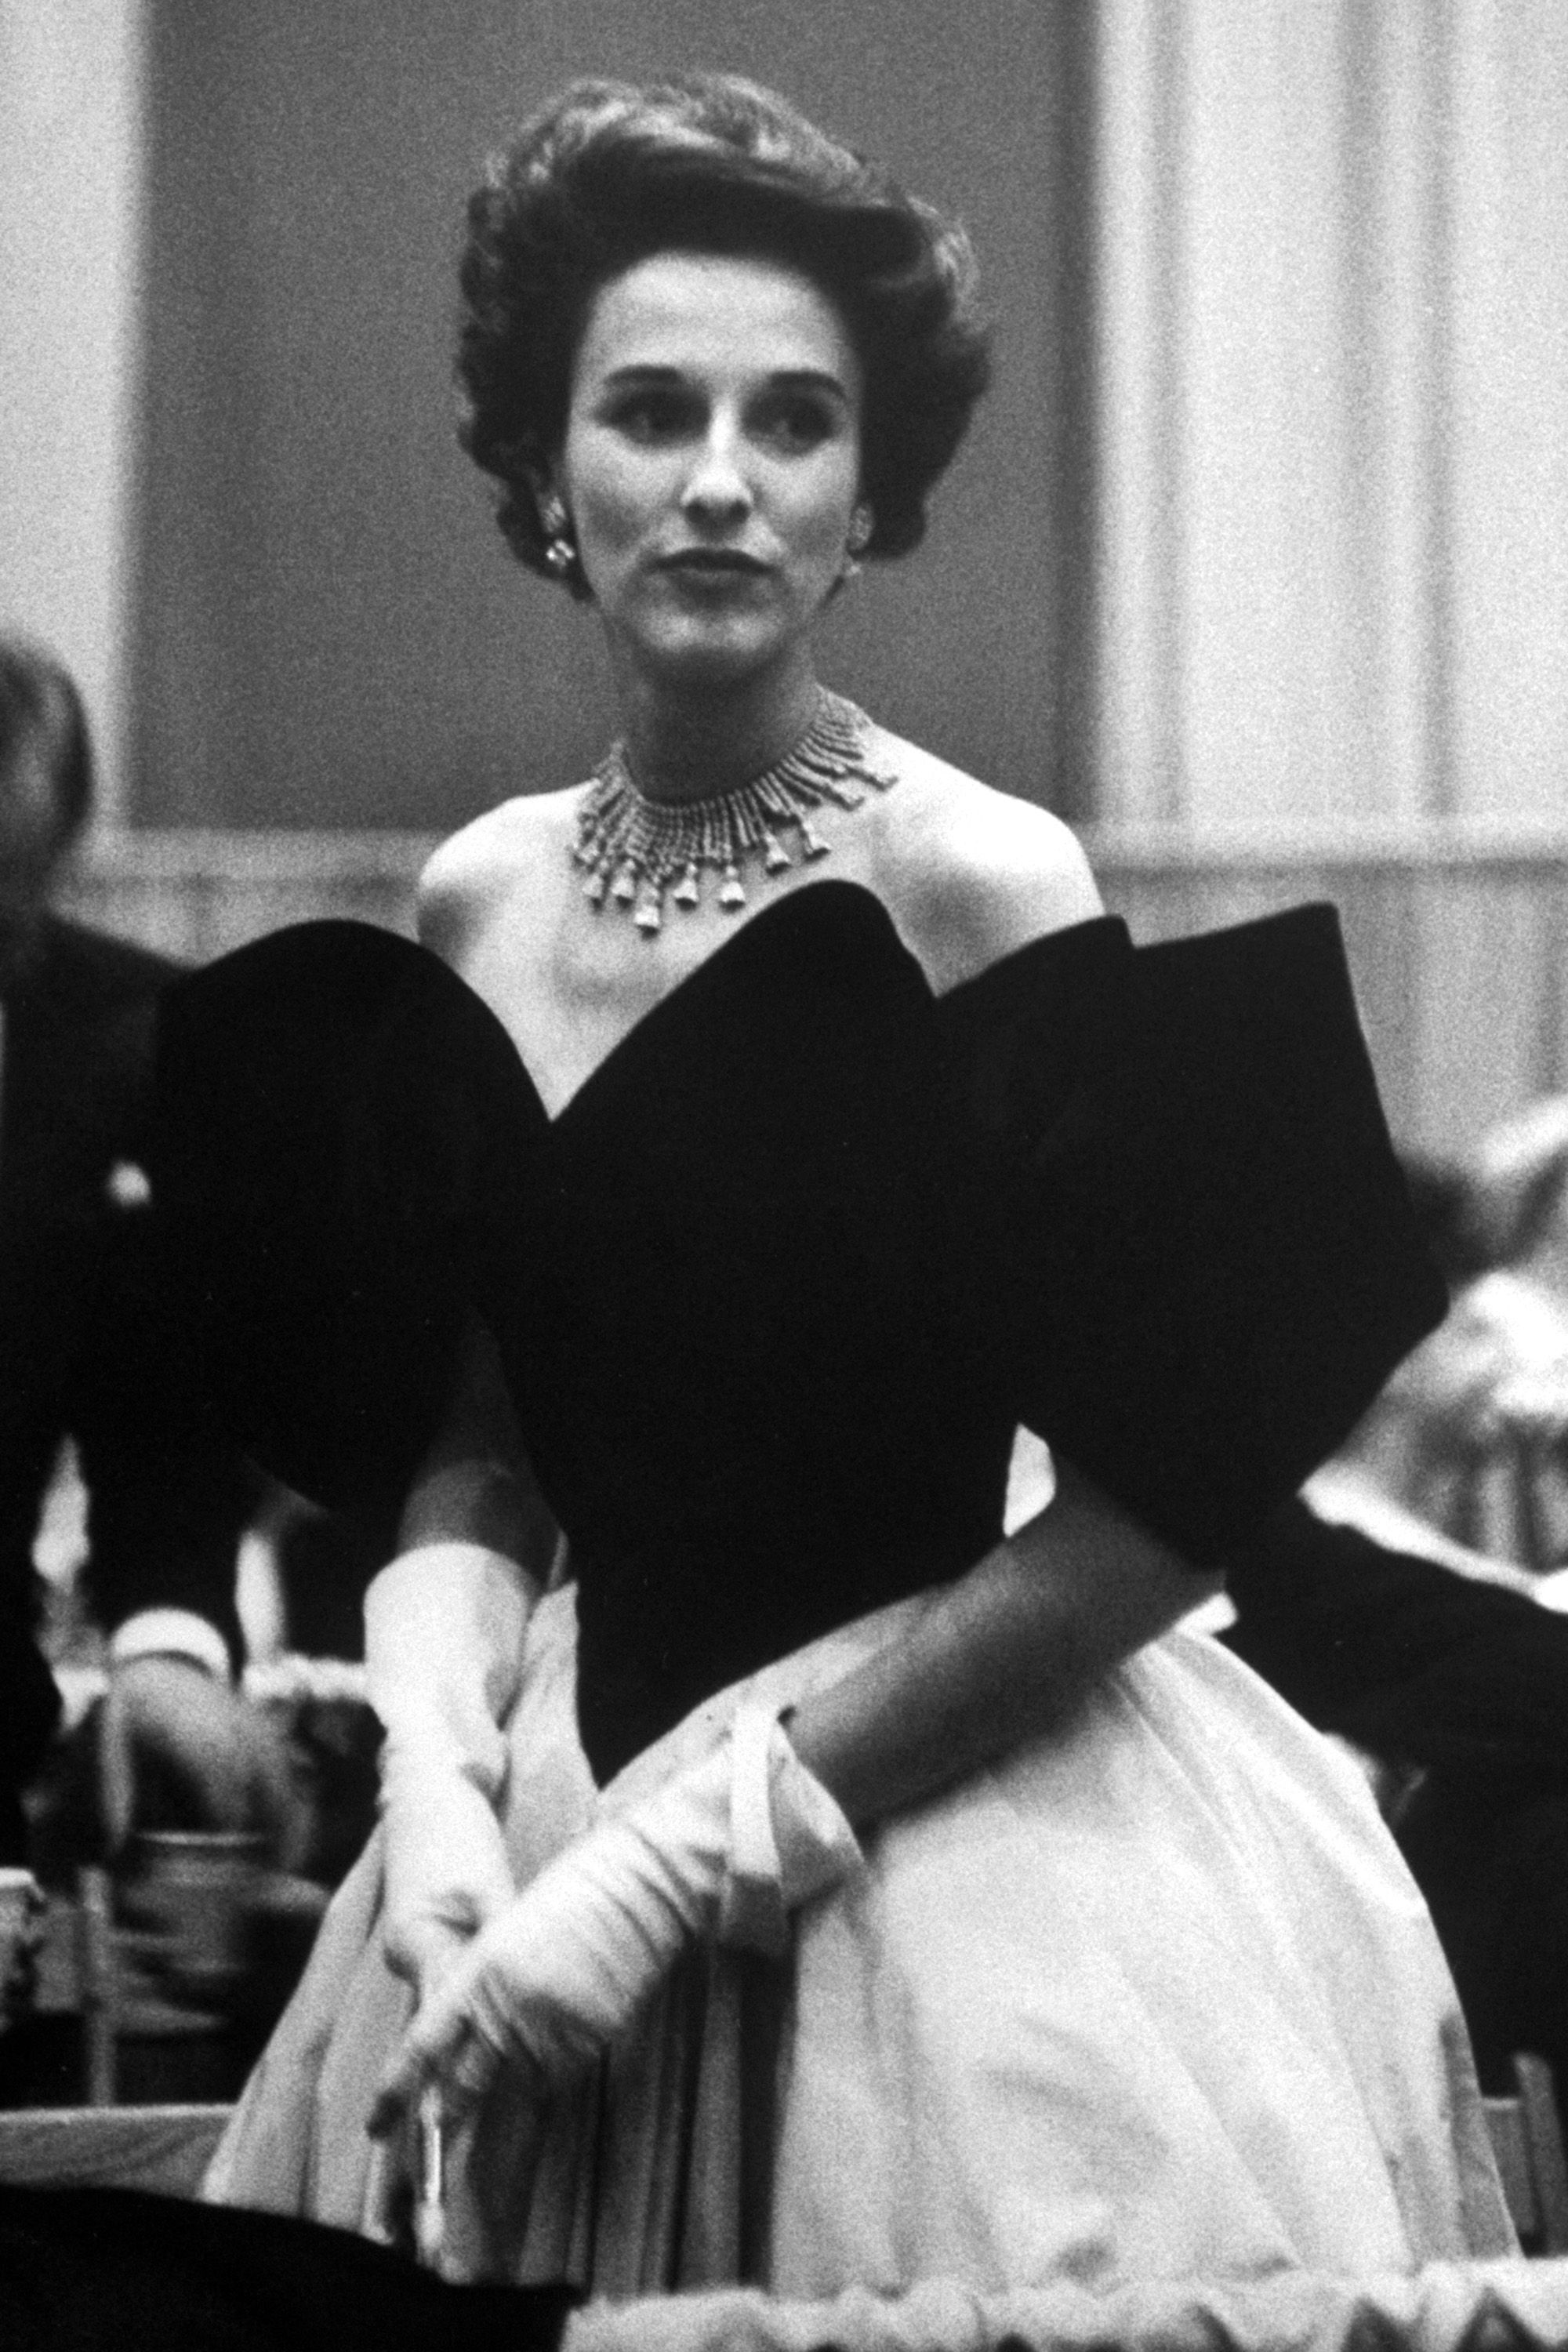 <p>     At the height of her fame in the '50s, socialite Babe Paley inspired scores of women with her approach to mixing high and low fashion. An iconic image of her with a scarf tied around her handbag sparked a trend that remains popular today. She dressed purely for own pleasure, embracing Fulco di Verdura jewels with luxe sable coats and chic, cheap costume jewelry. </p>